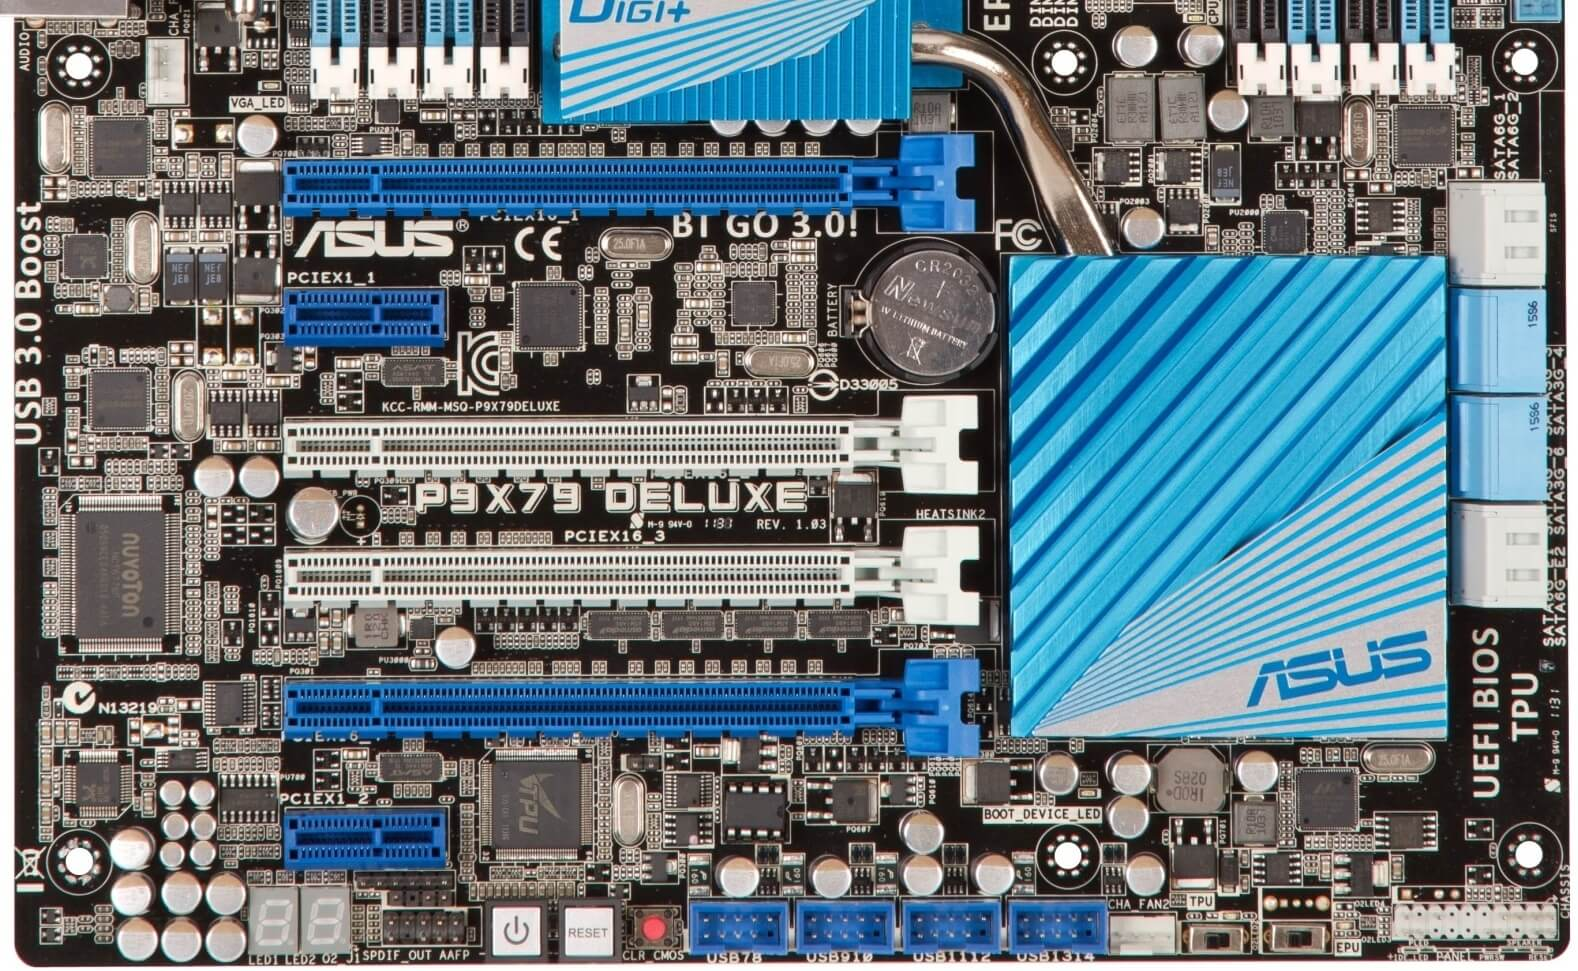 pci express, pcie 4.0